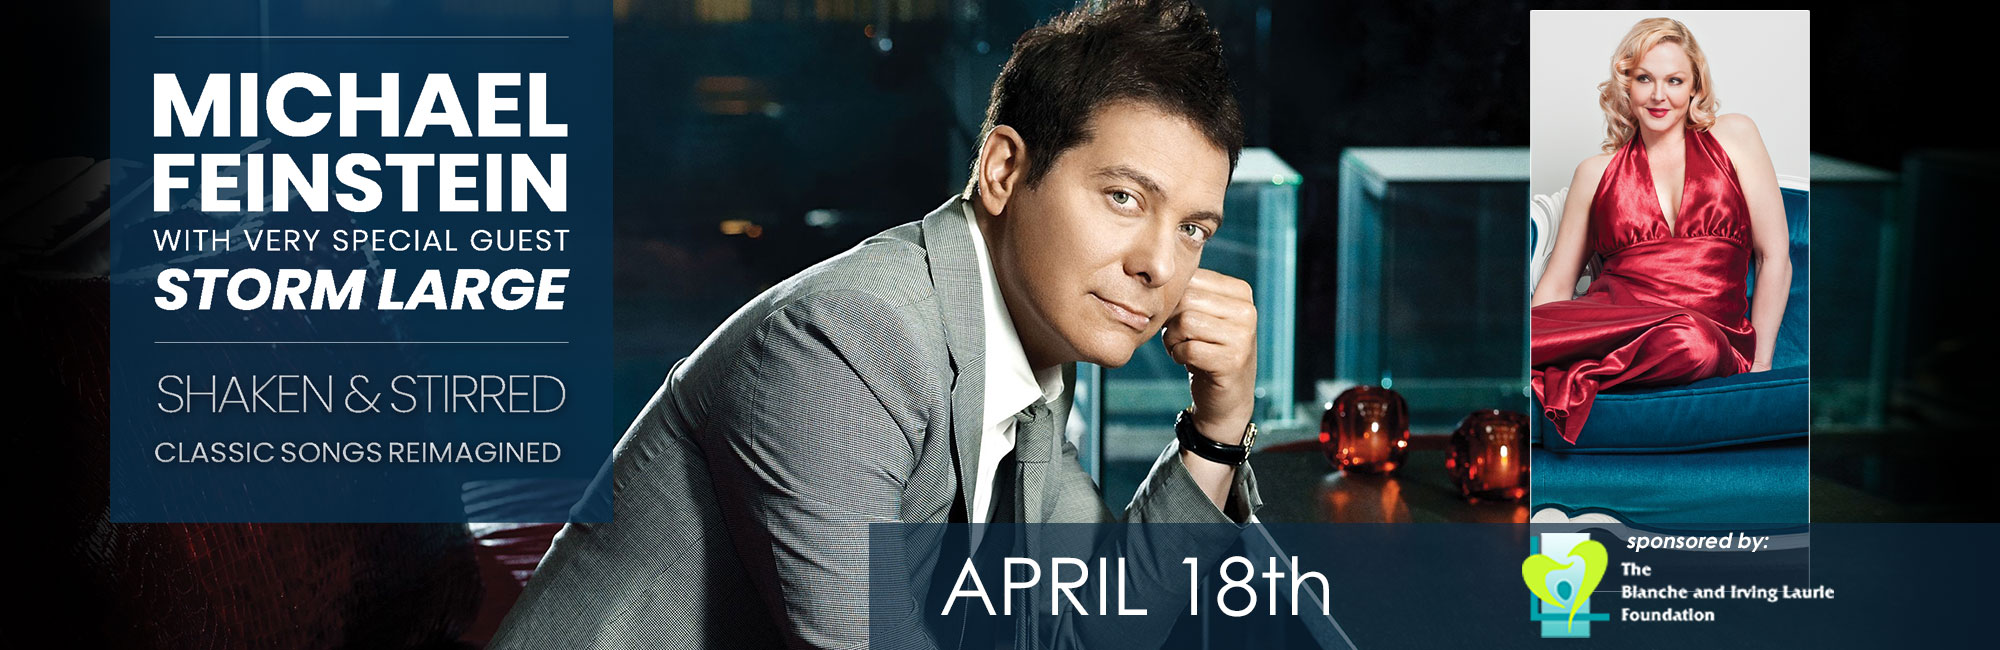 Michael Feinstein with very special guest Storm Large